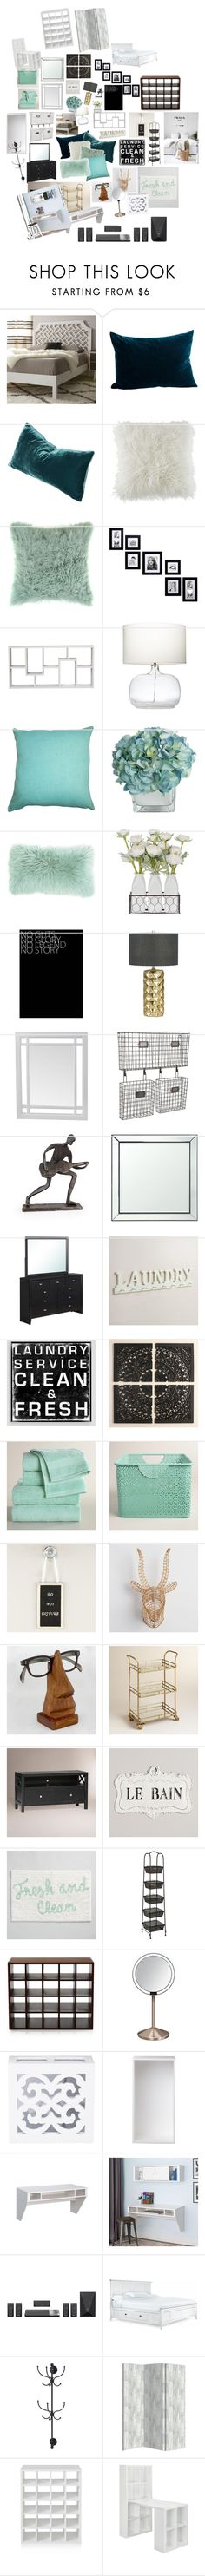 """""""Untitled #2109"""" by bucketlistdiary on Polyvore featuring interior, interiors, interior design, home, home decor, interior decorating, I Love Living, BCBGeneration, Bloomingville and Adeco"""